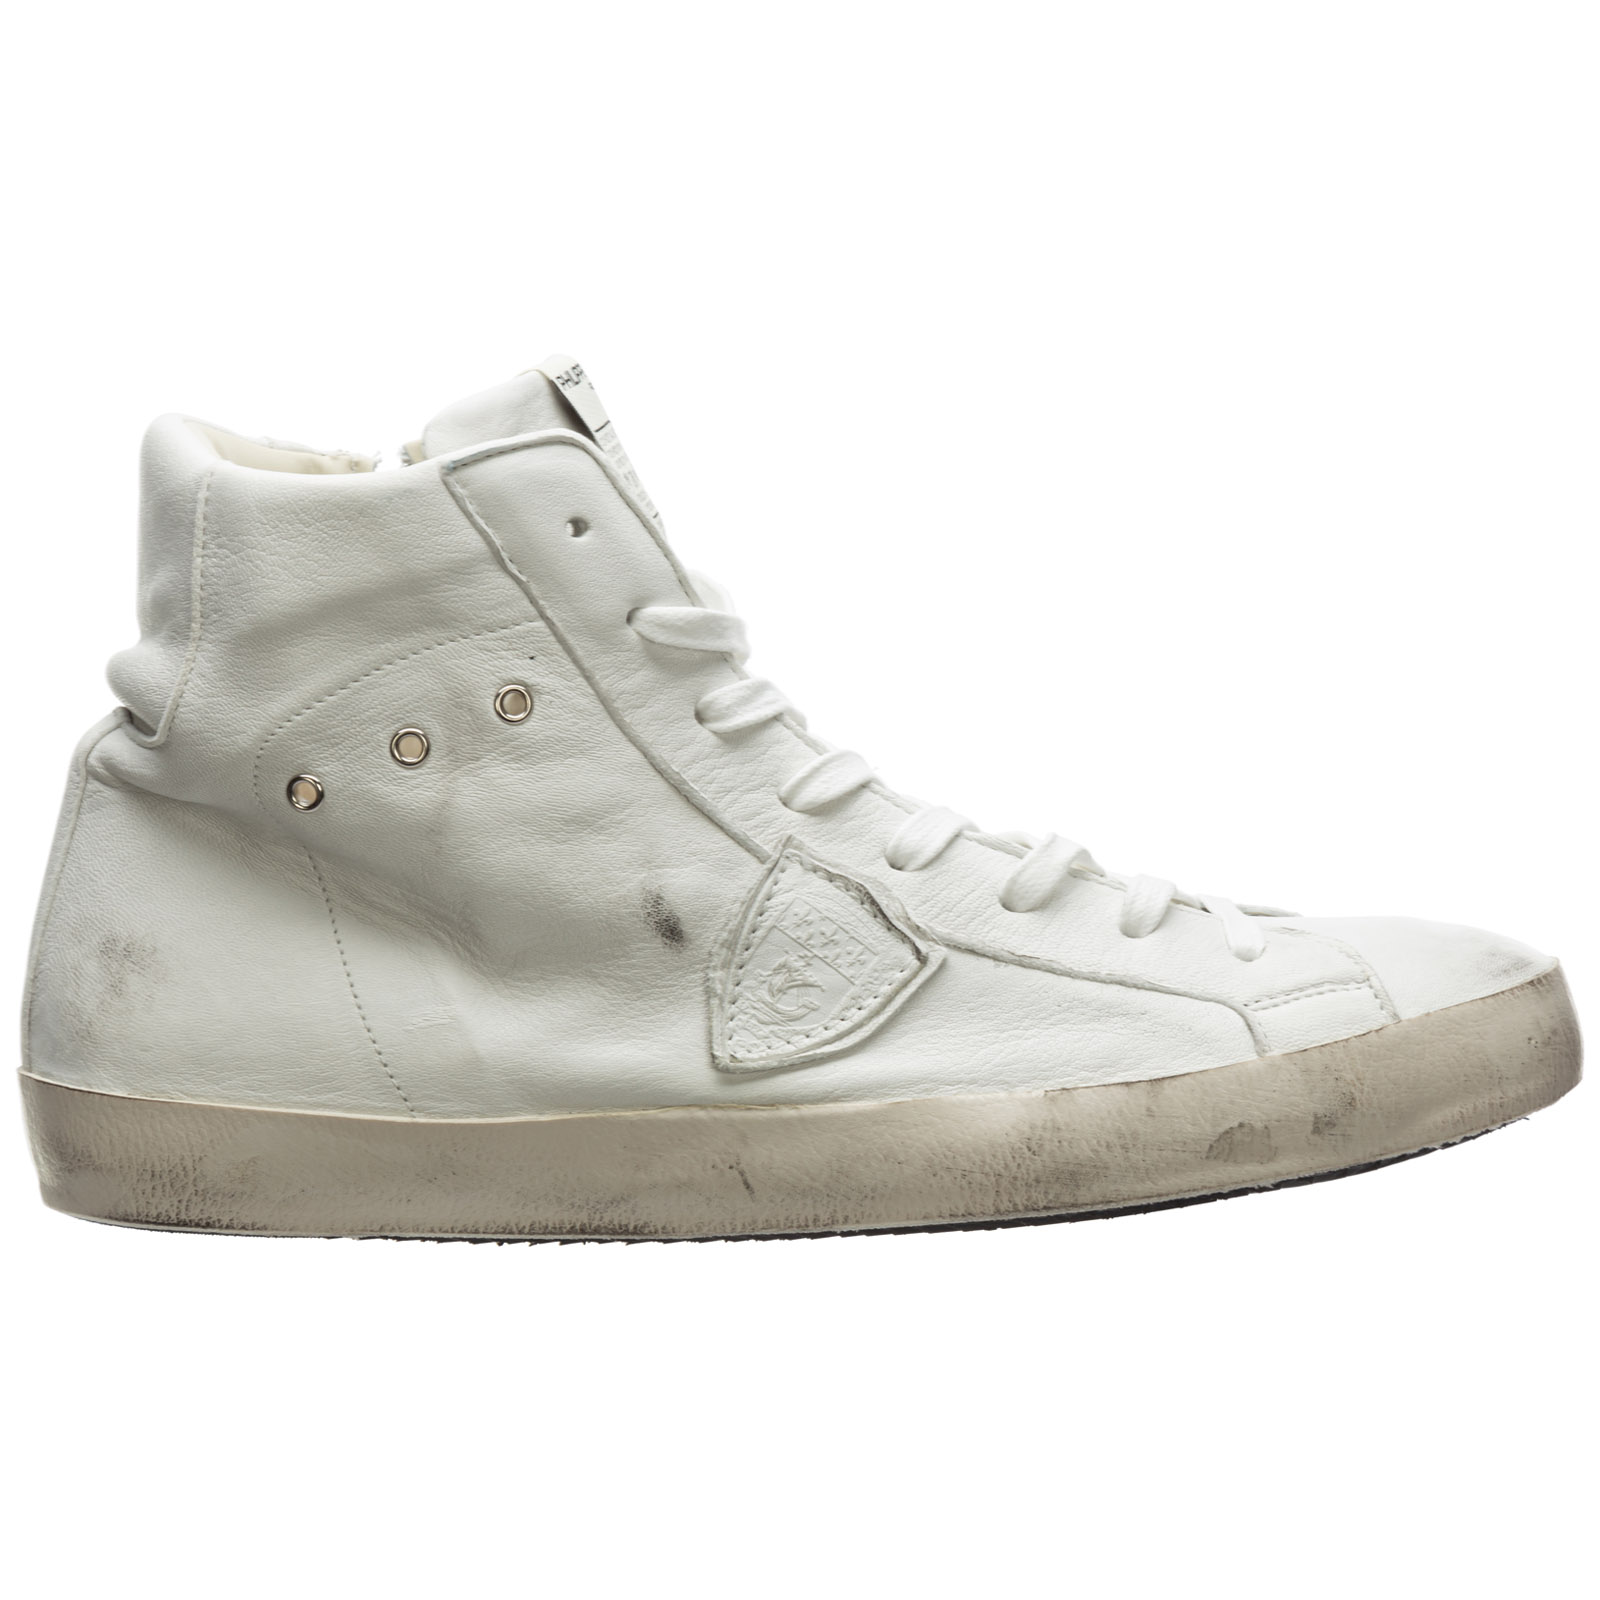 Men's shoes high top leather trainers sneakers paris